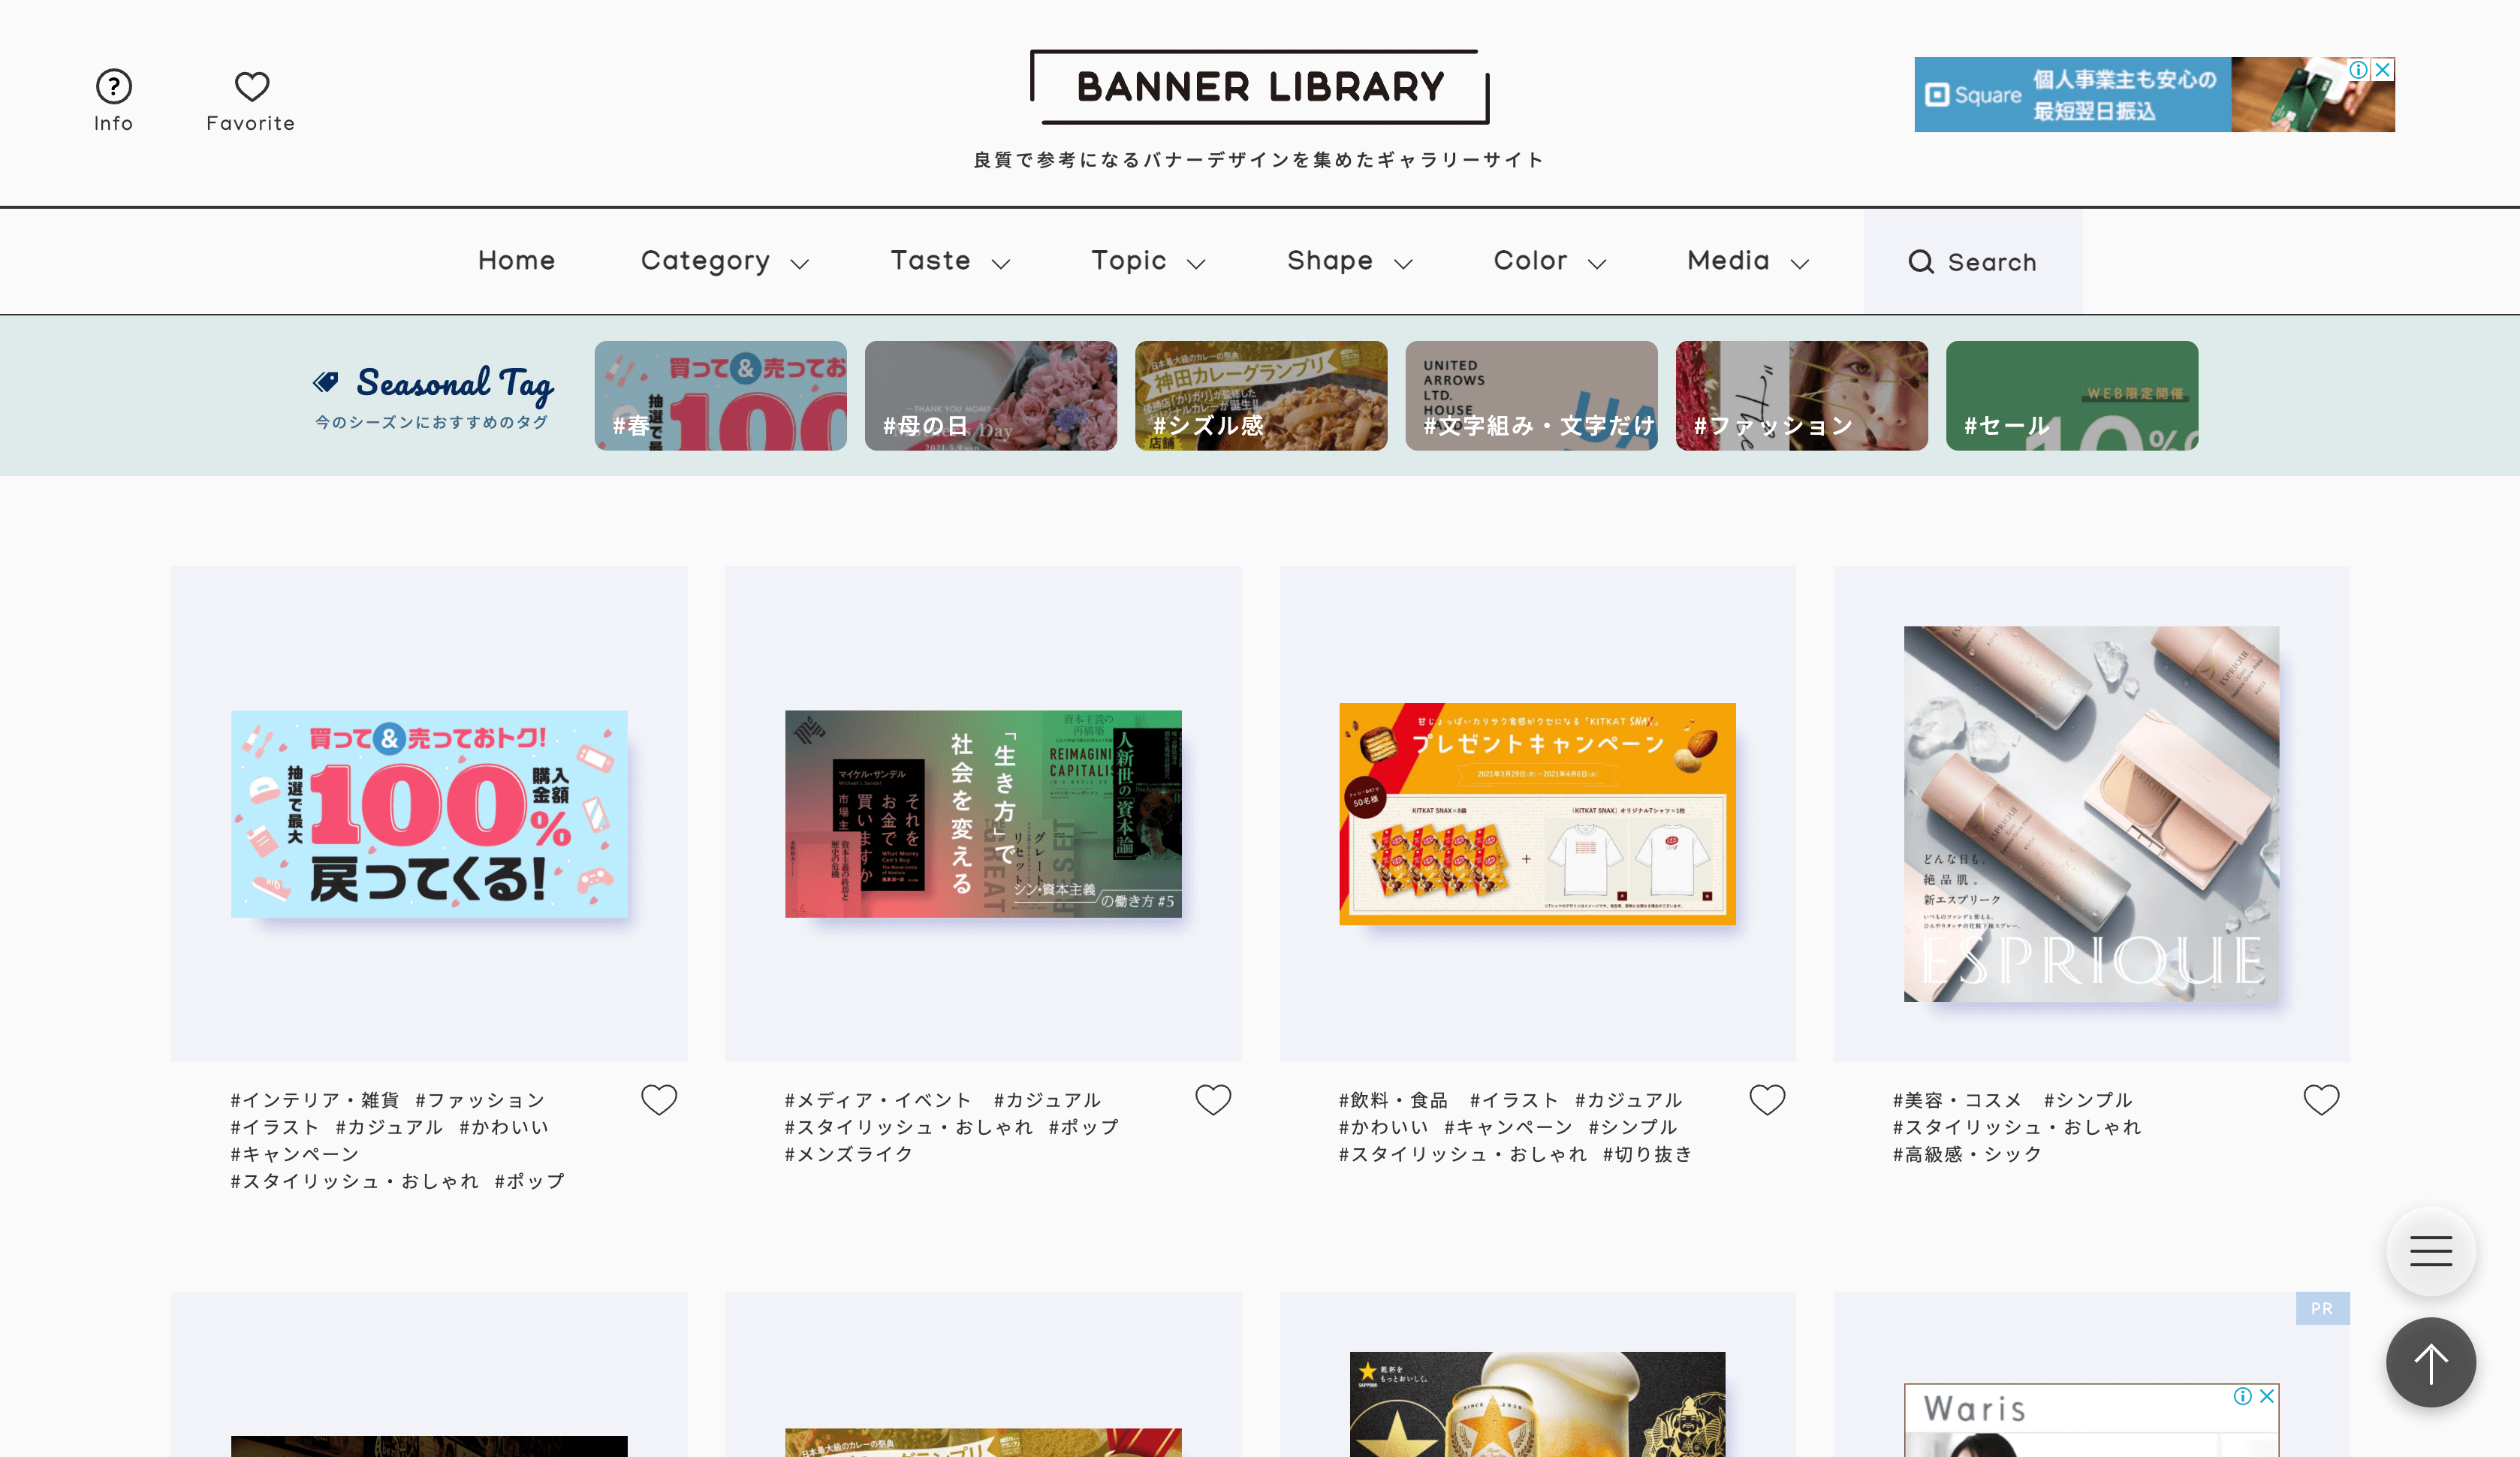 BANNER LIBRARY